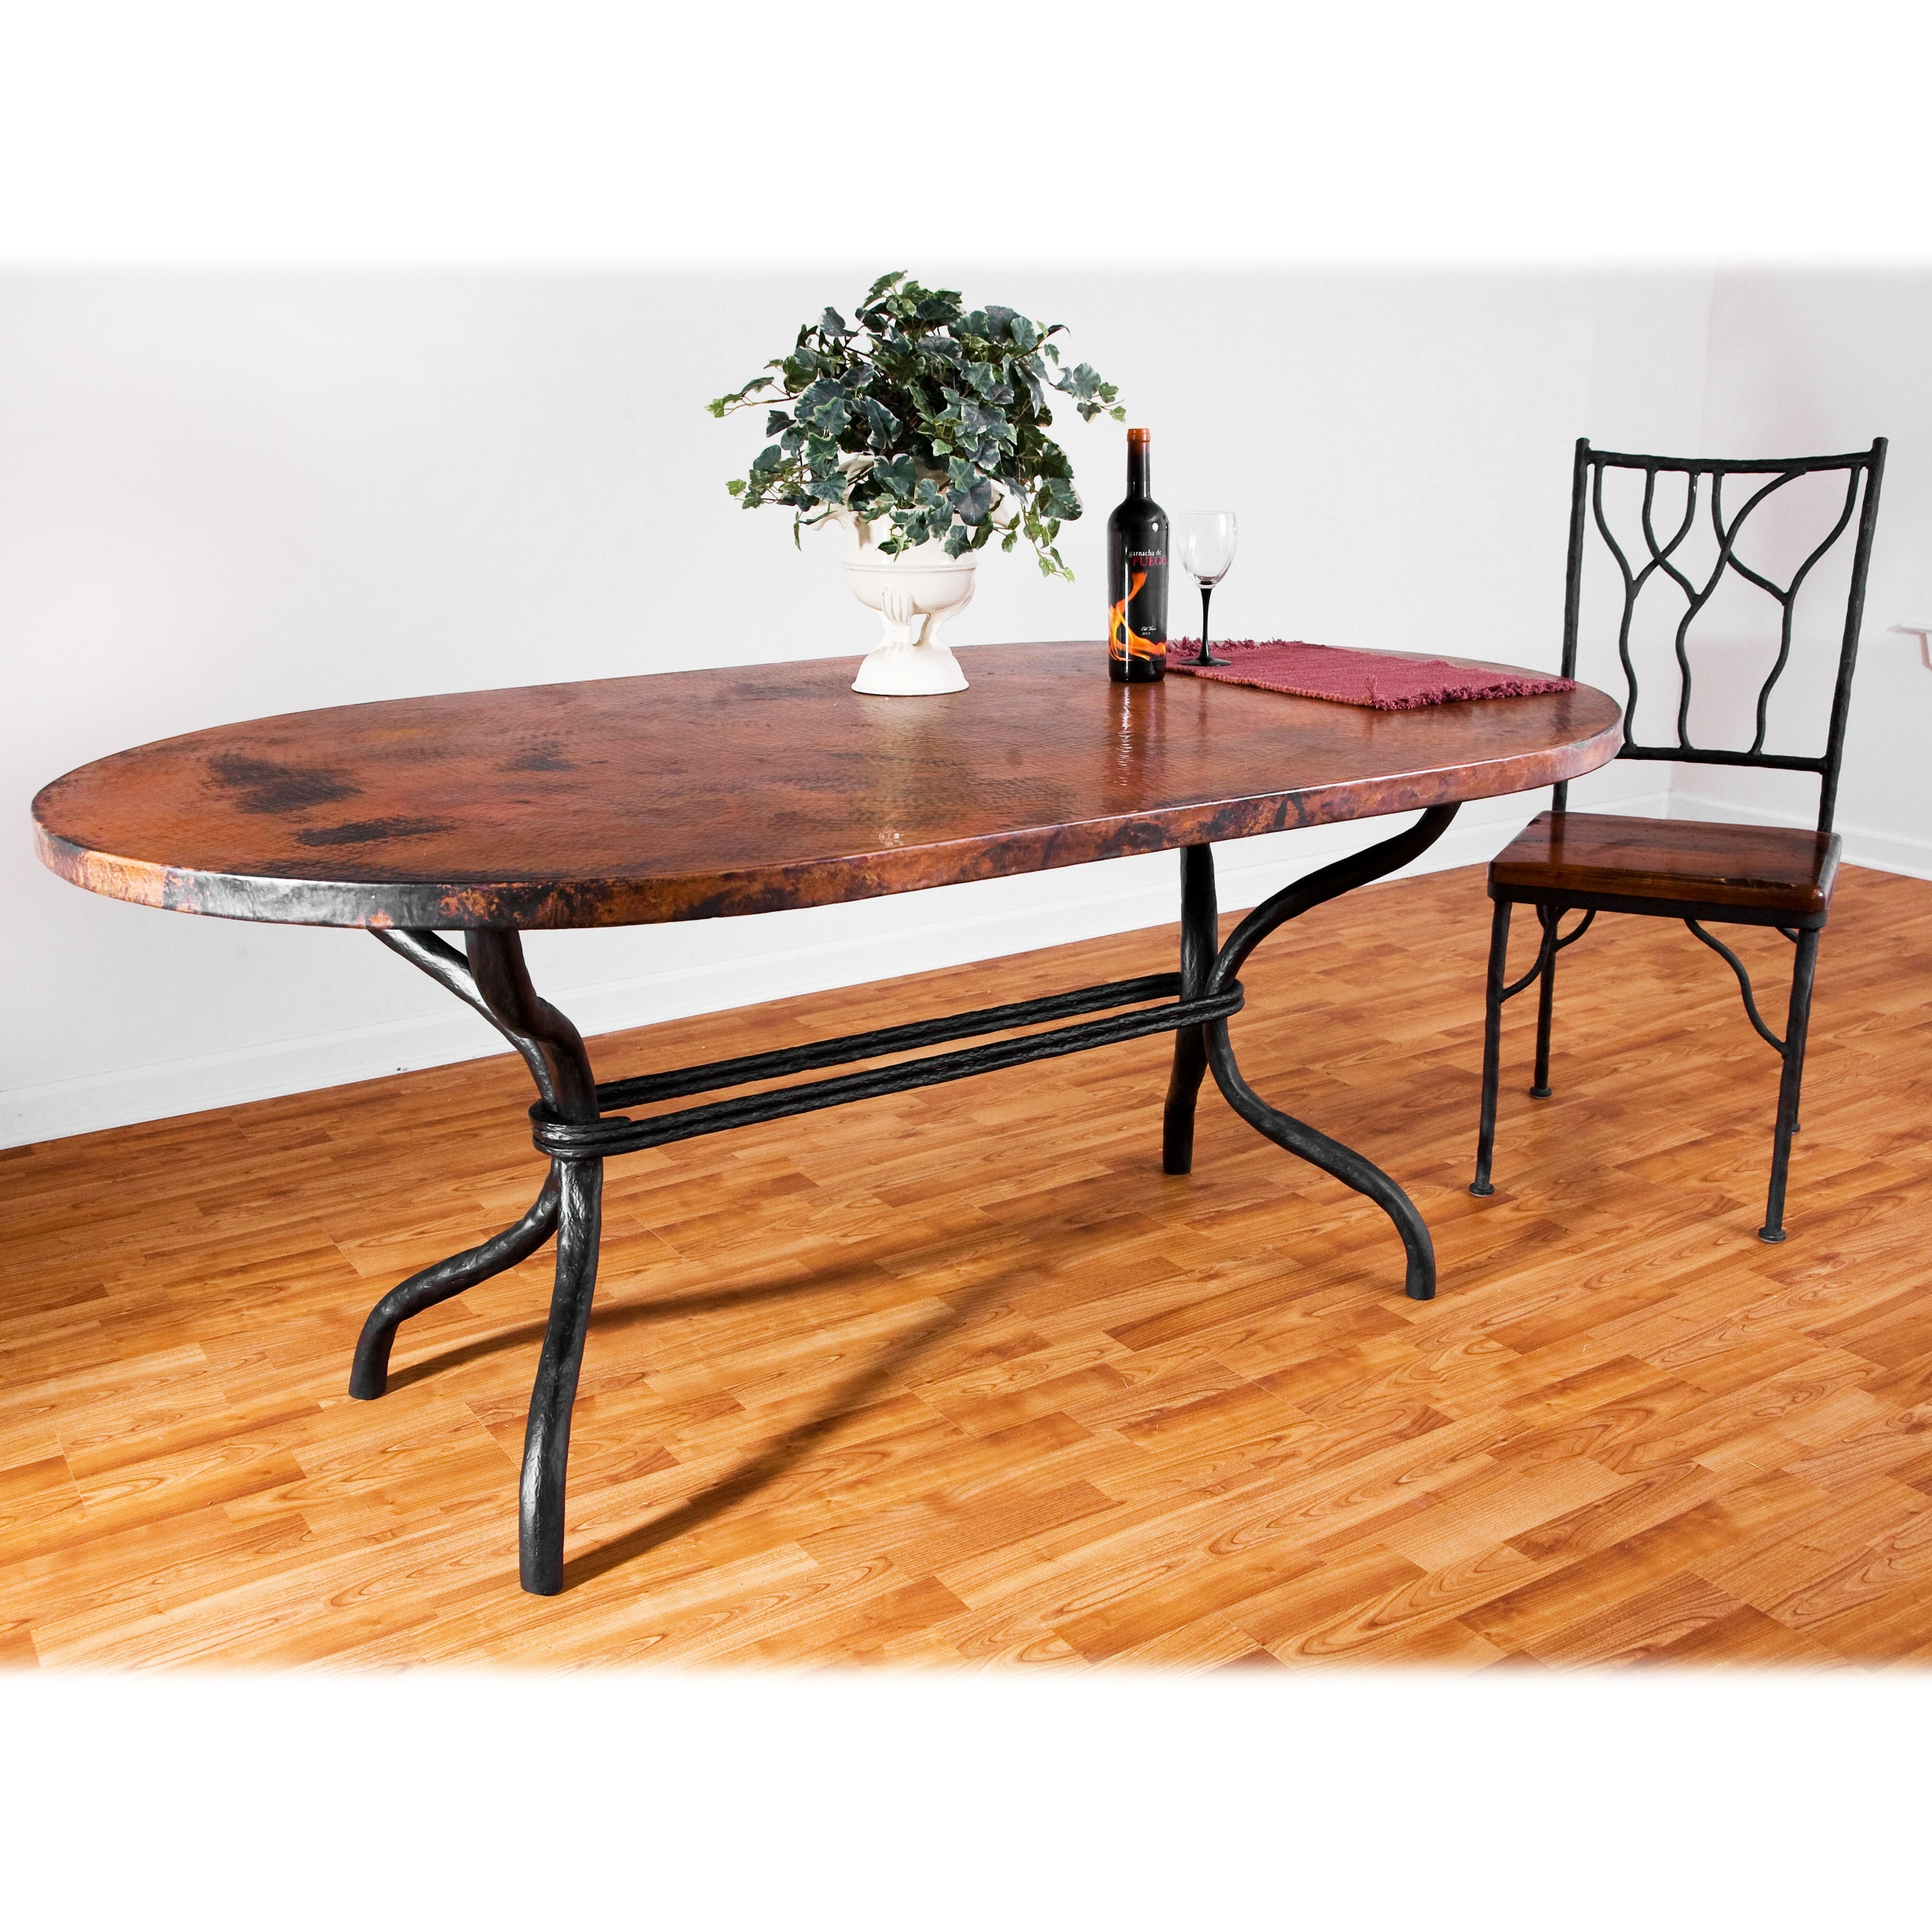 Contemporary Wrought Iron Woodland Dining Table